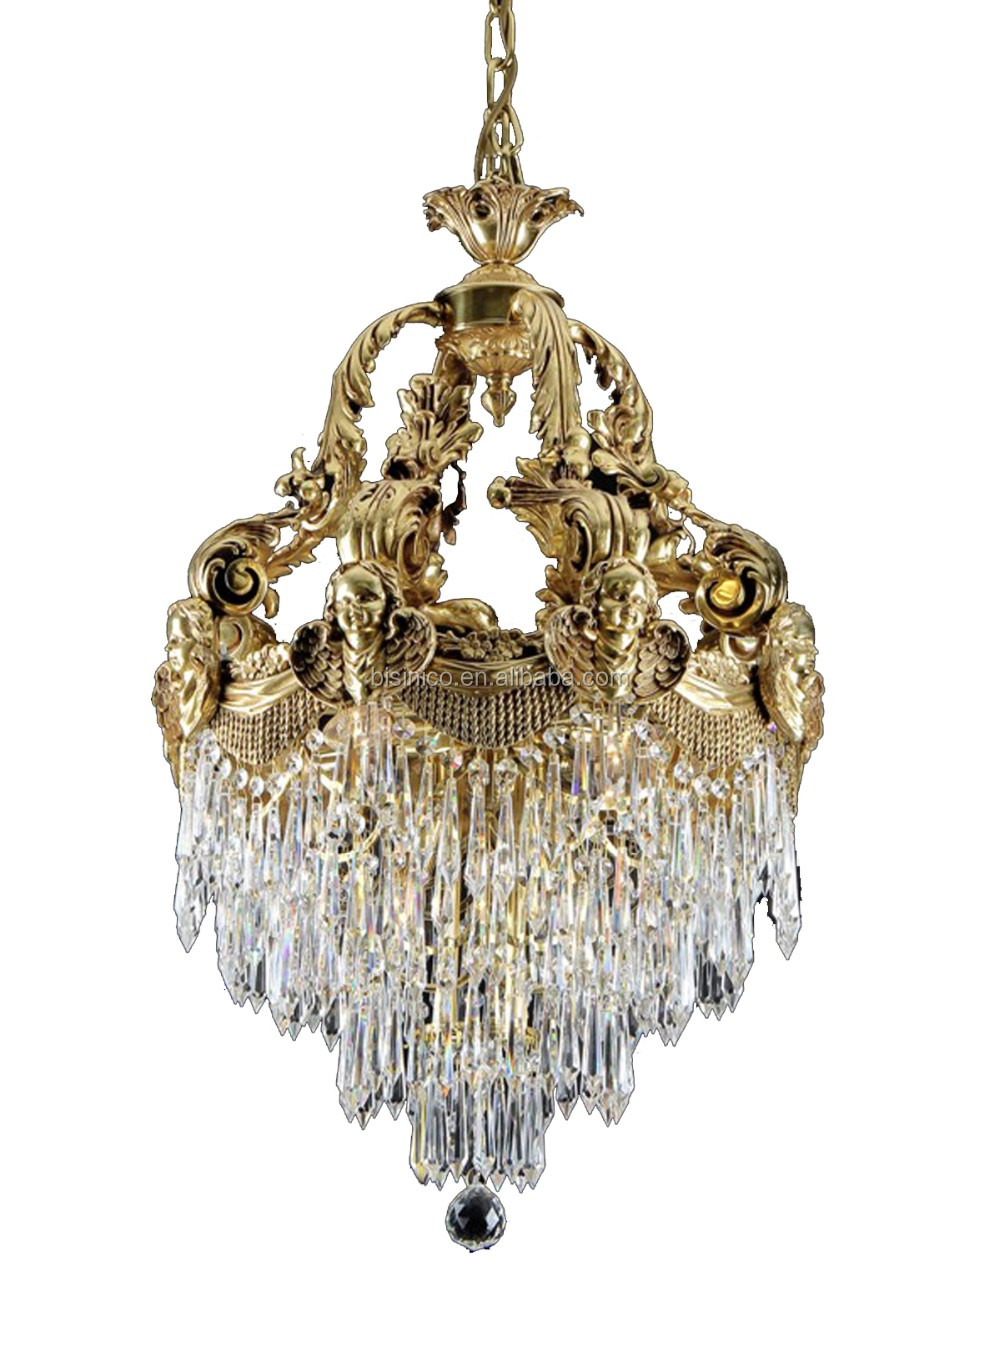 Rococo Style Crystal & Golden Brass Chandelier For Living Room Hotel Hall/ Elegant Crystal Chandelier Decorated Pendant Lamp